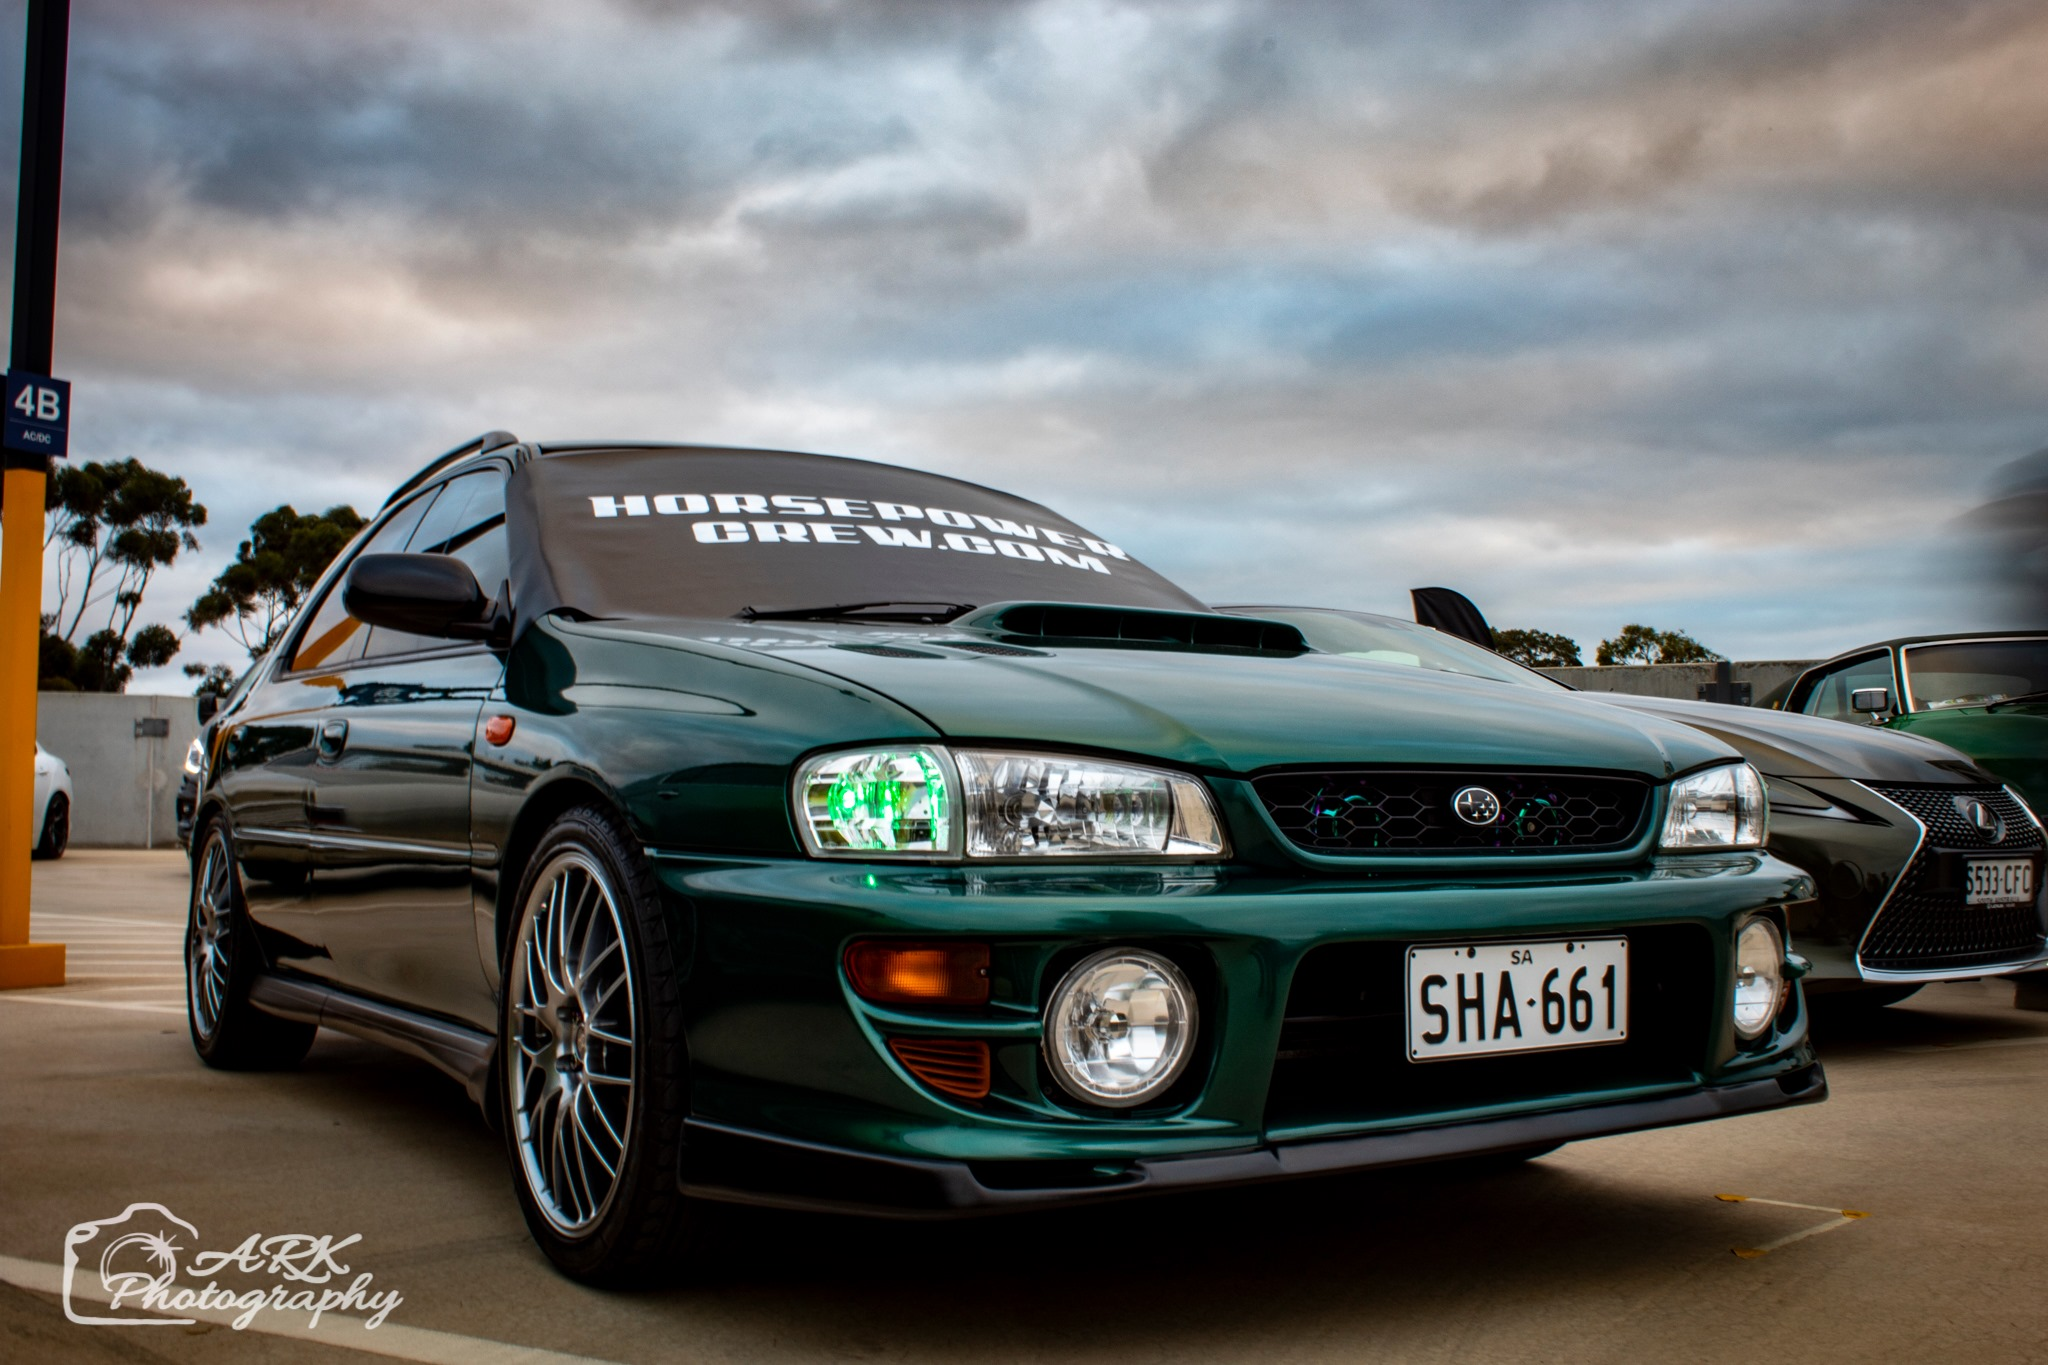 windscreen-cover-dot-com-modern-size-black-with-white-writing-green-WRX3